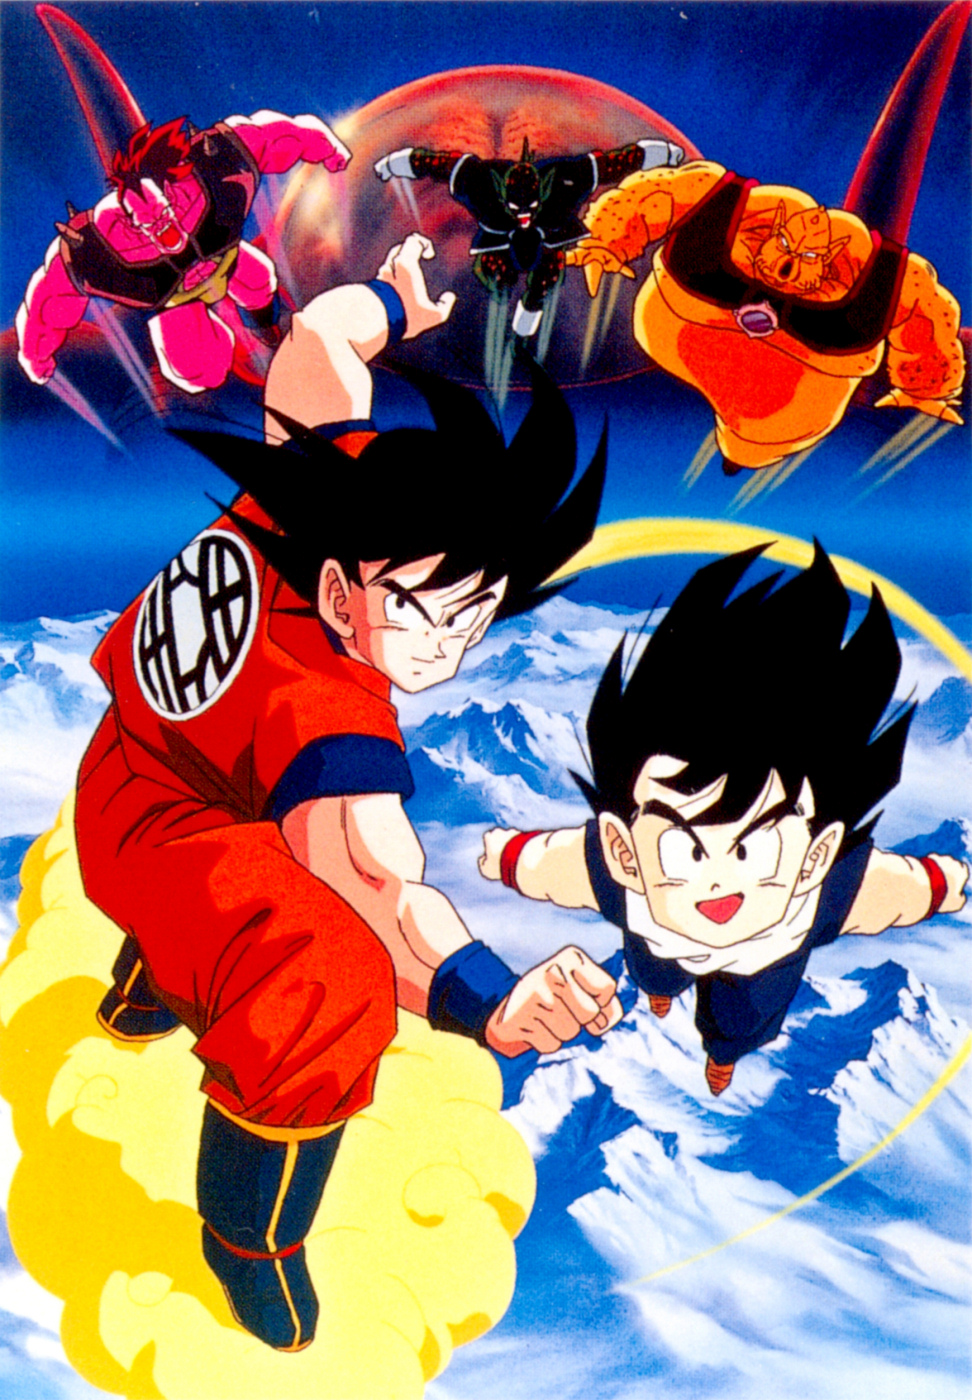 Dragon Ball Z The Movie 2 The Strongest Guy in The World ยอดยุทธหนึ่งในใต้หล้า